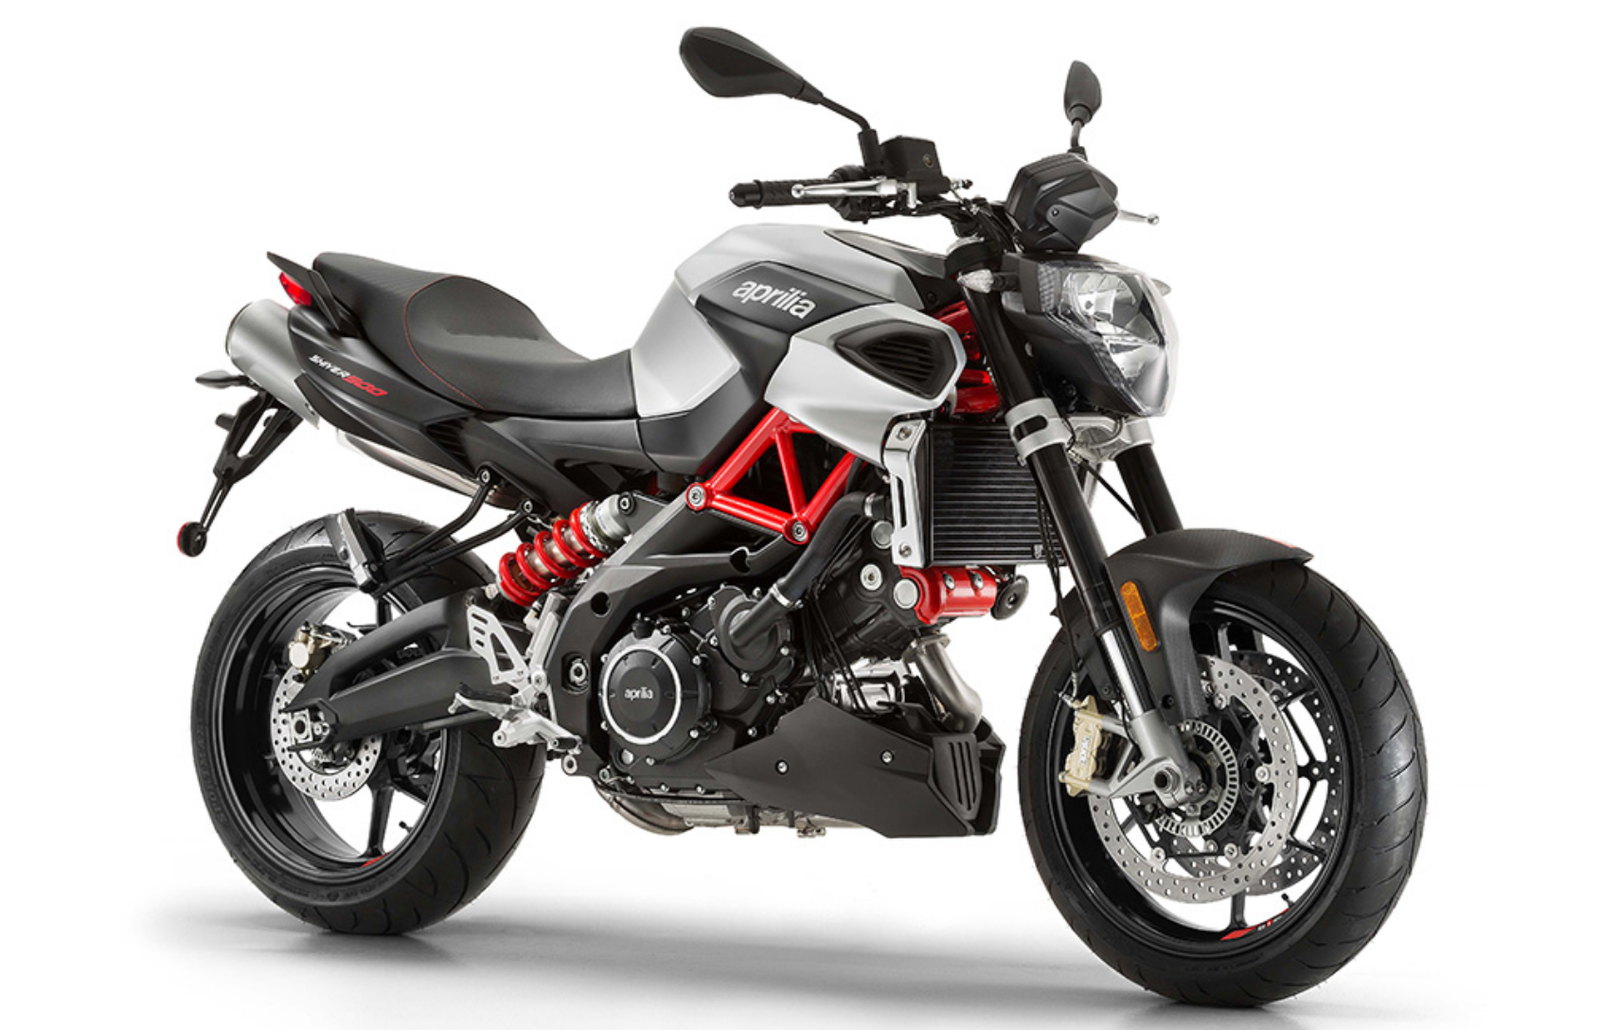 The 10 Best Buys in Motorcycles for 2019 Motorcycle, New